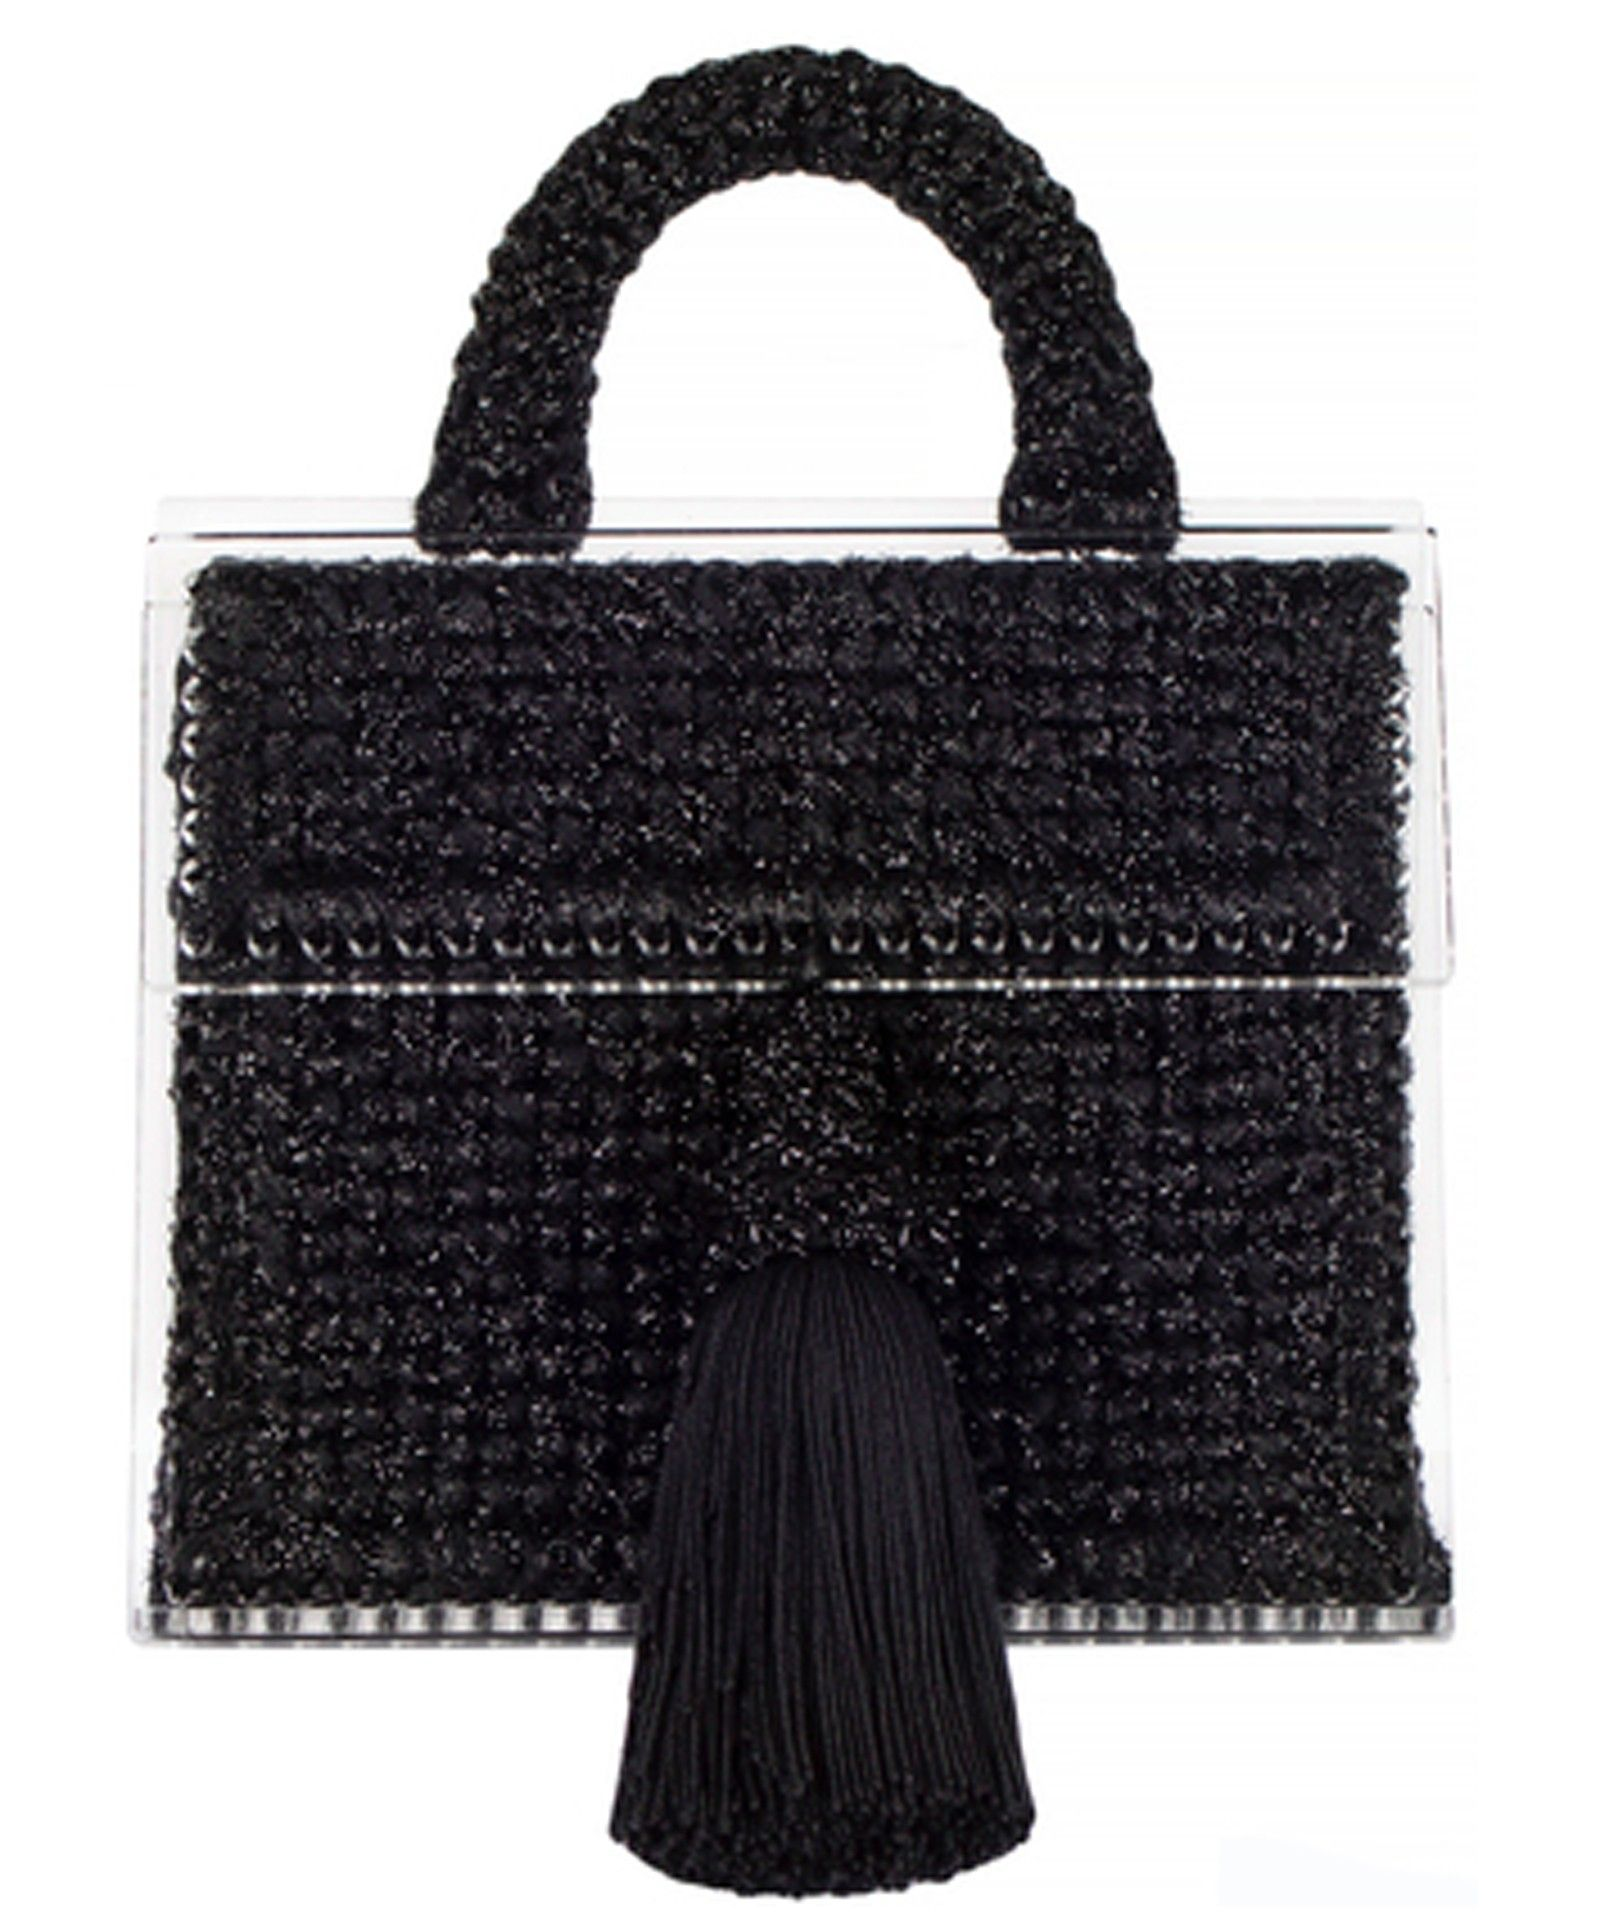 Copacabana large woven handbag - Black 0711 IbGnWev3R